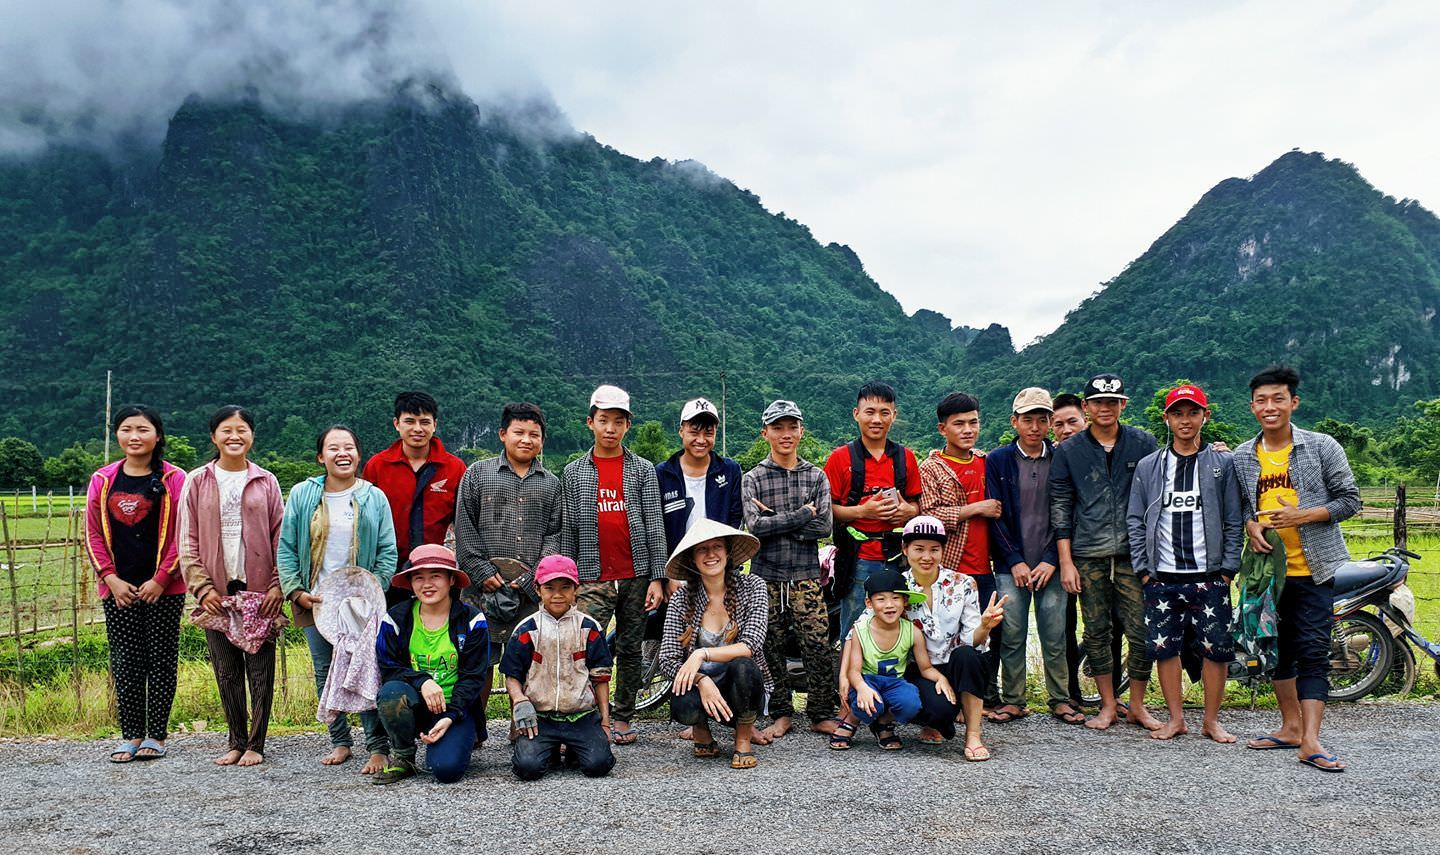 The Sae Lao Project in Vang Vieng, Laos